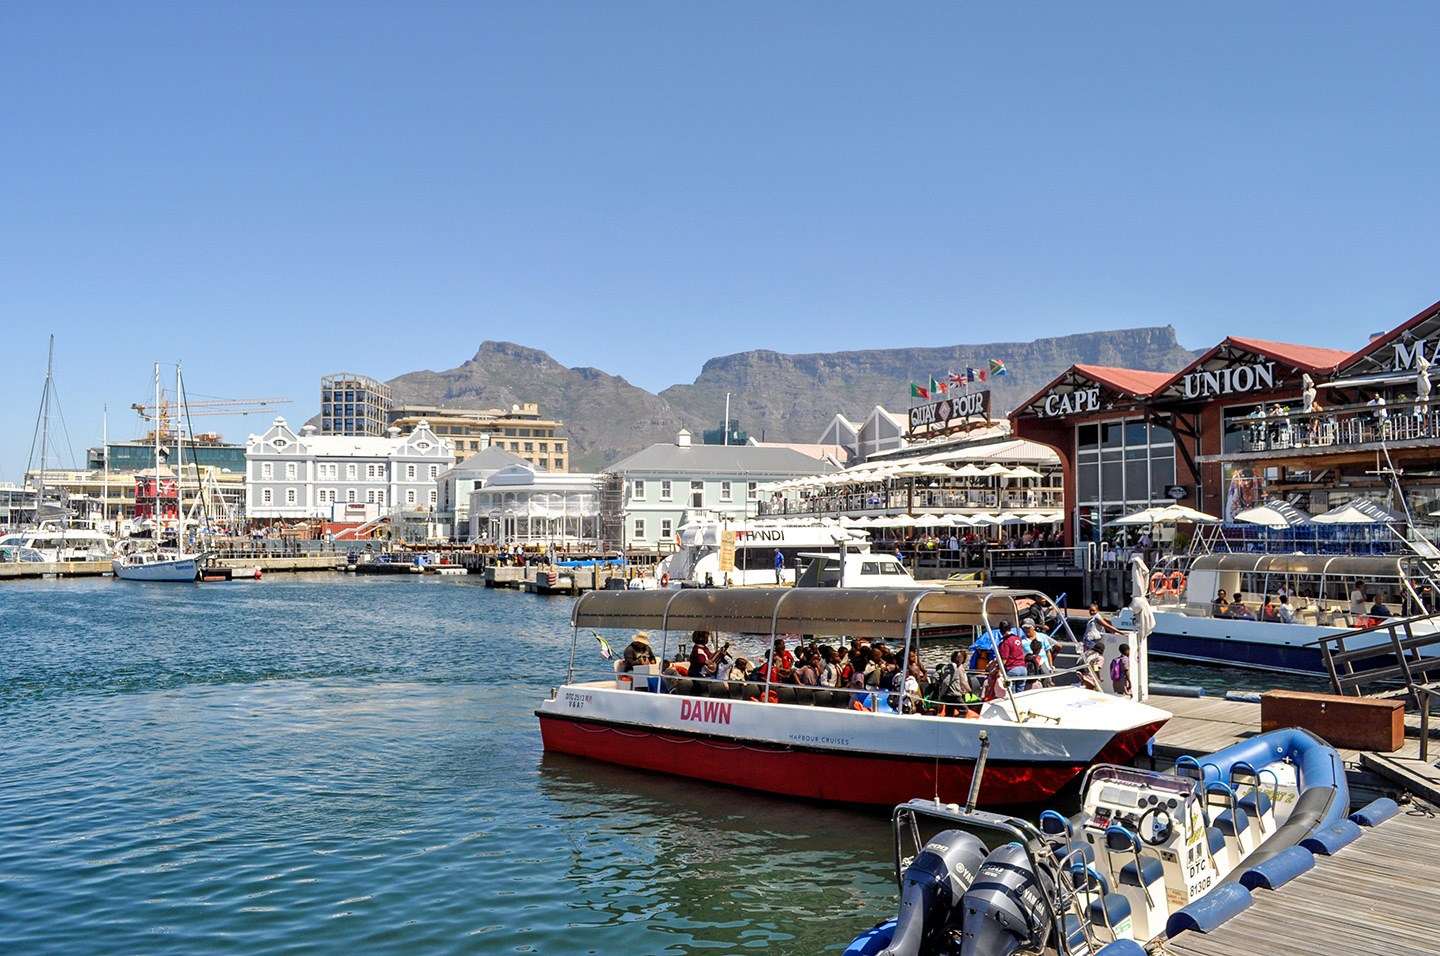 Boats in the harbour at the V&A Waterfront in Cape Town